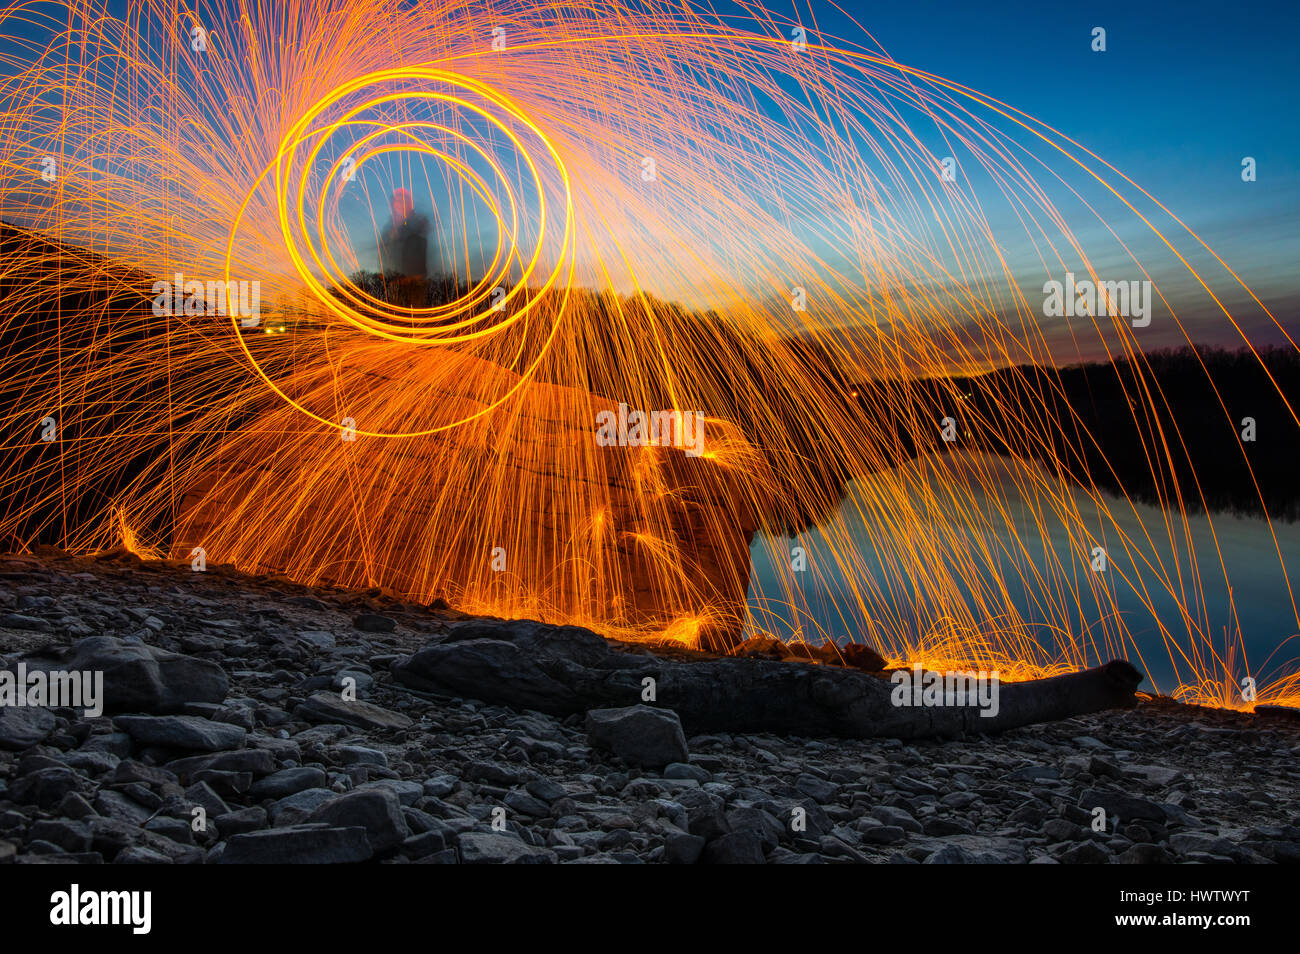 A person standing on a rock against a lake at dusk spinning steel wool on fire with sparks flying in all directions. Stock Photo